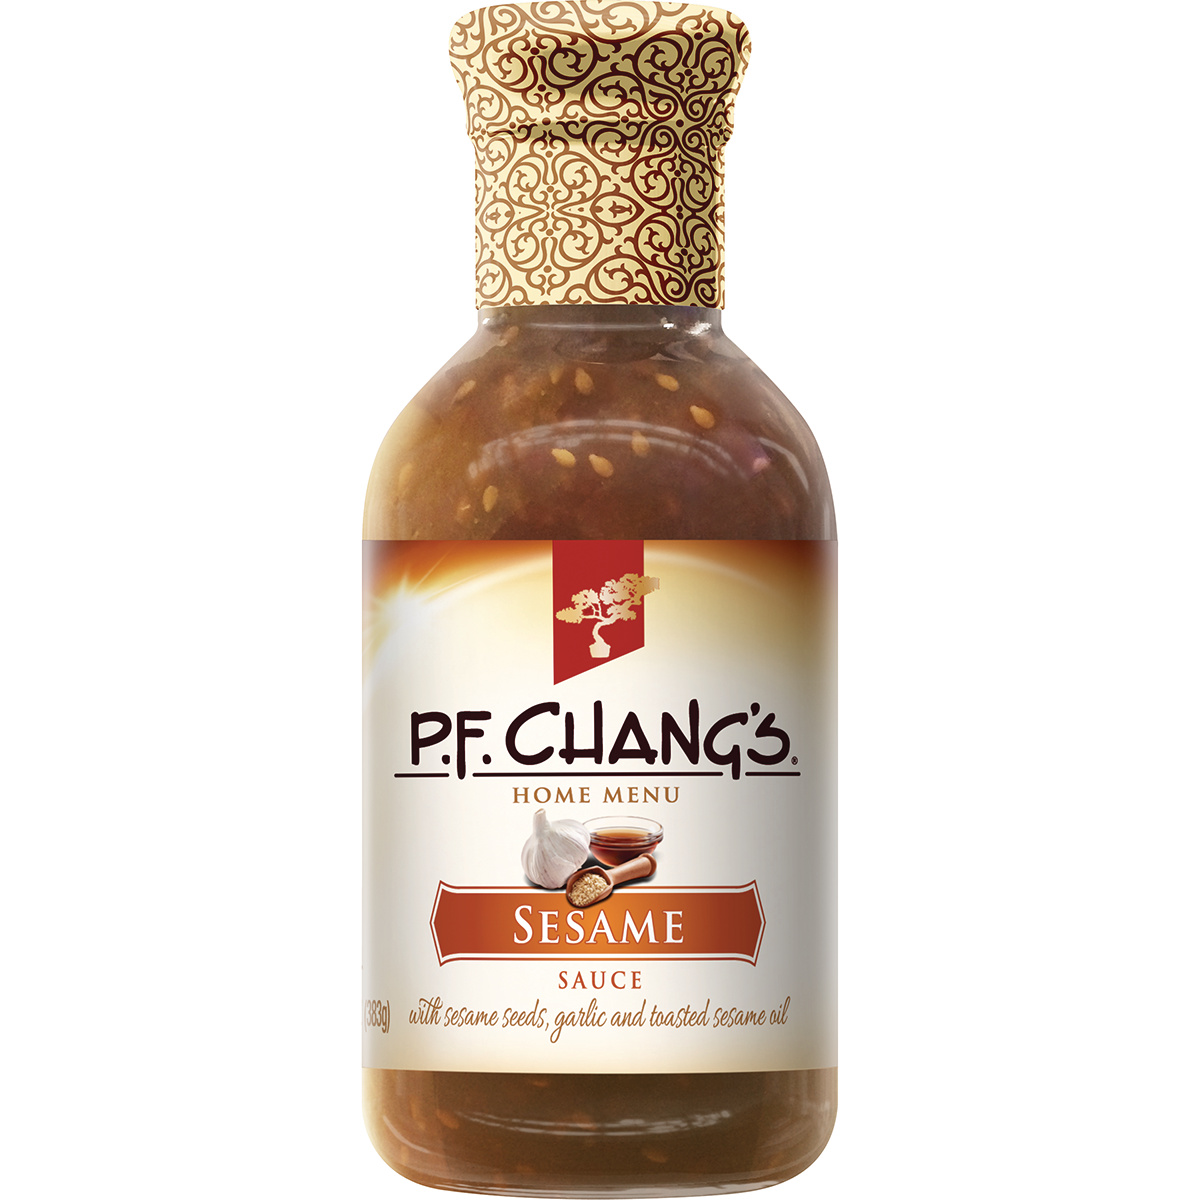 P.F. Chang's Home Menu Sesame Sauce, 13.5 Ounce